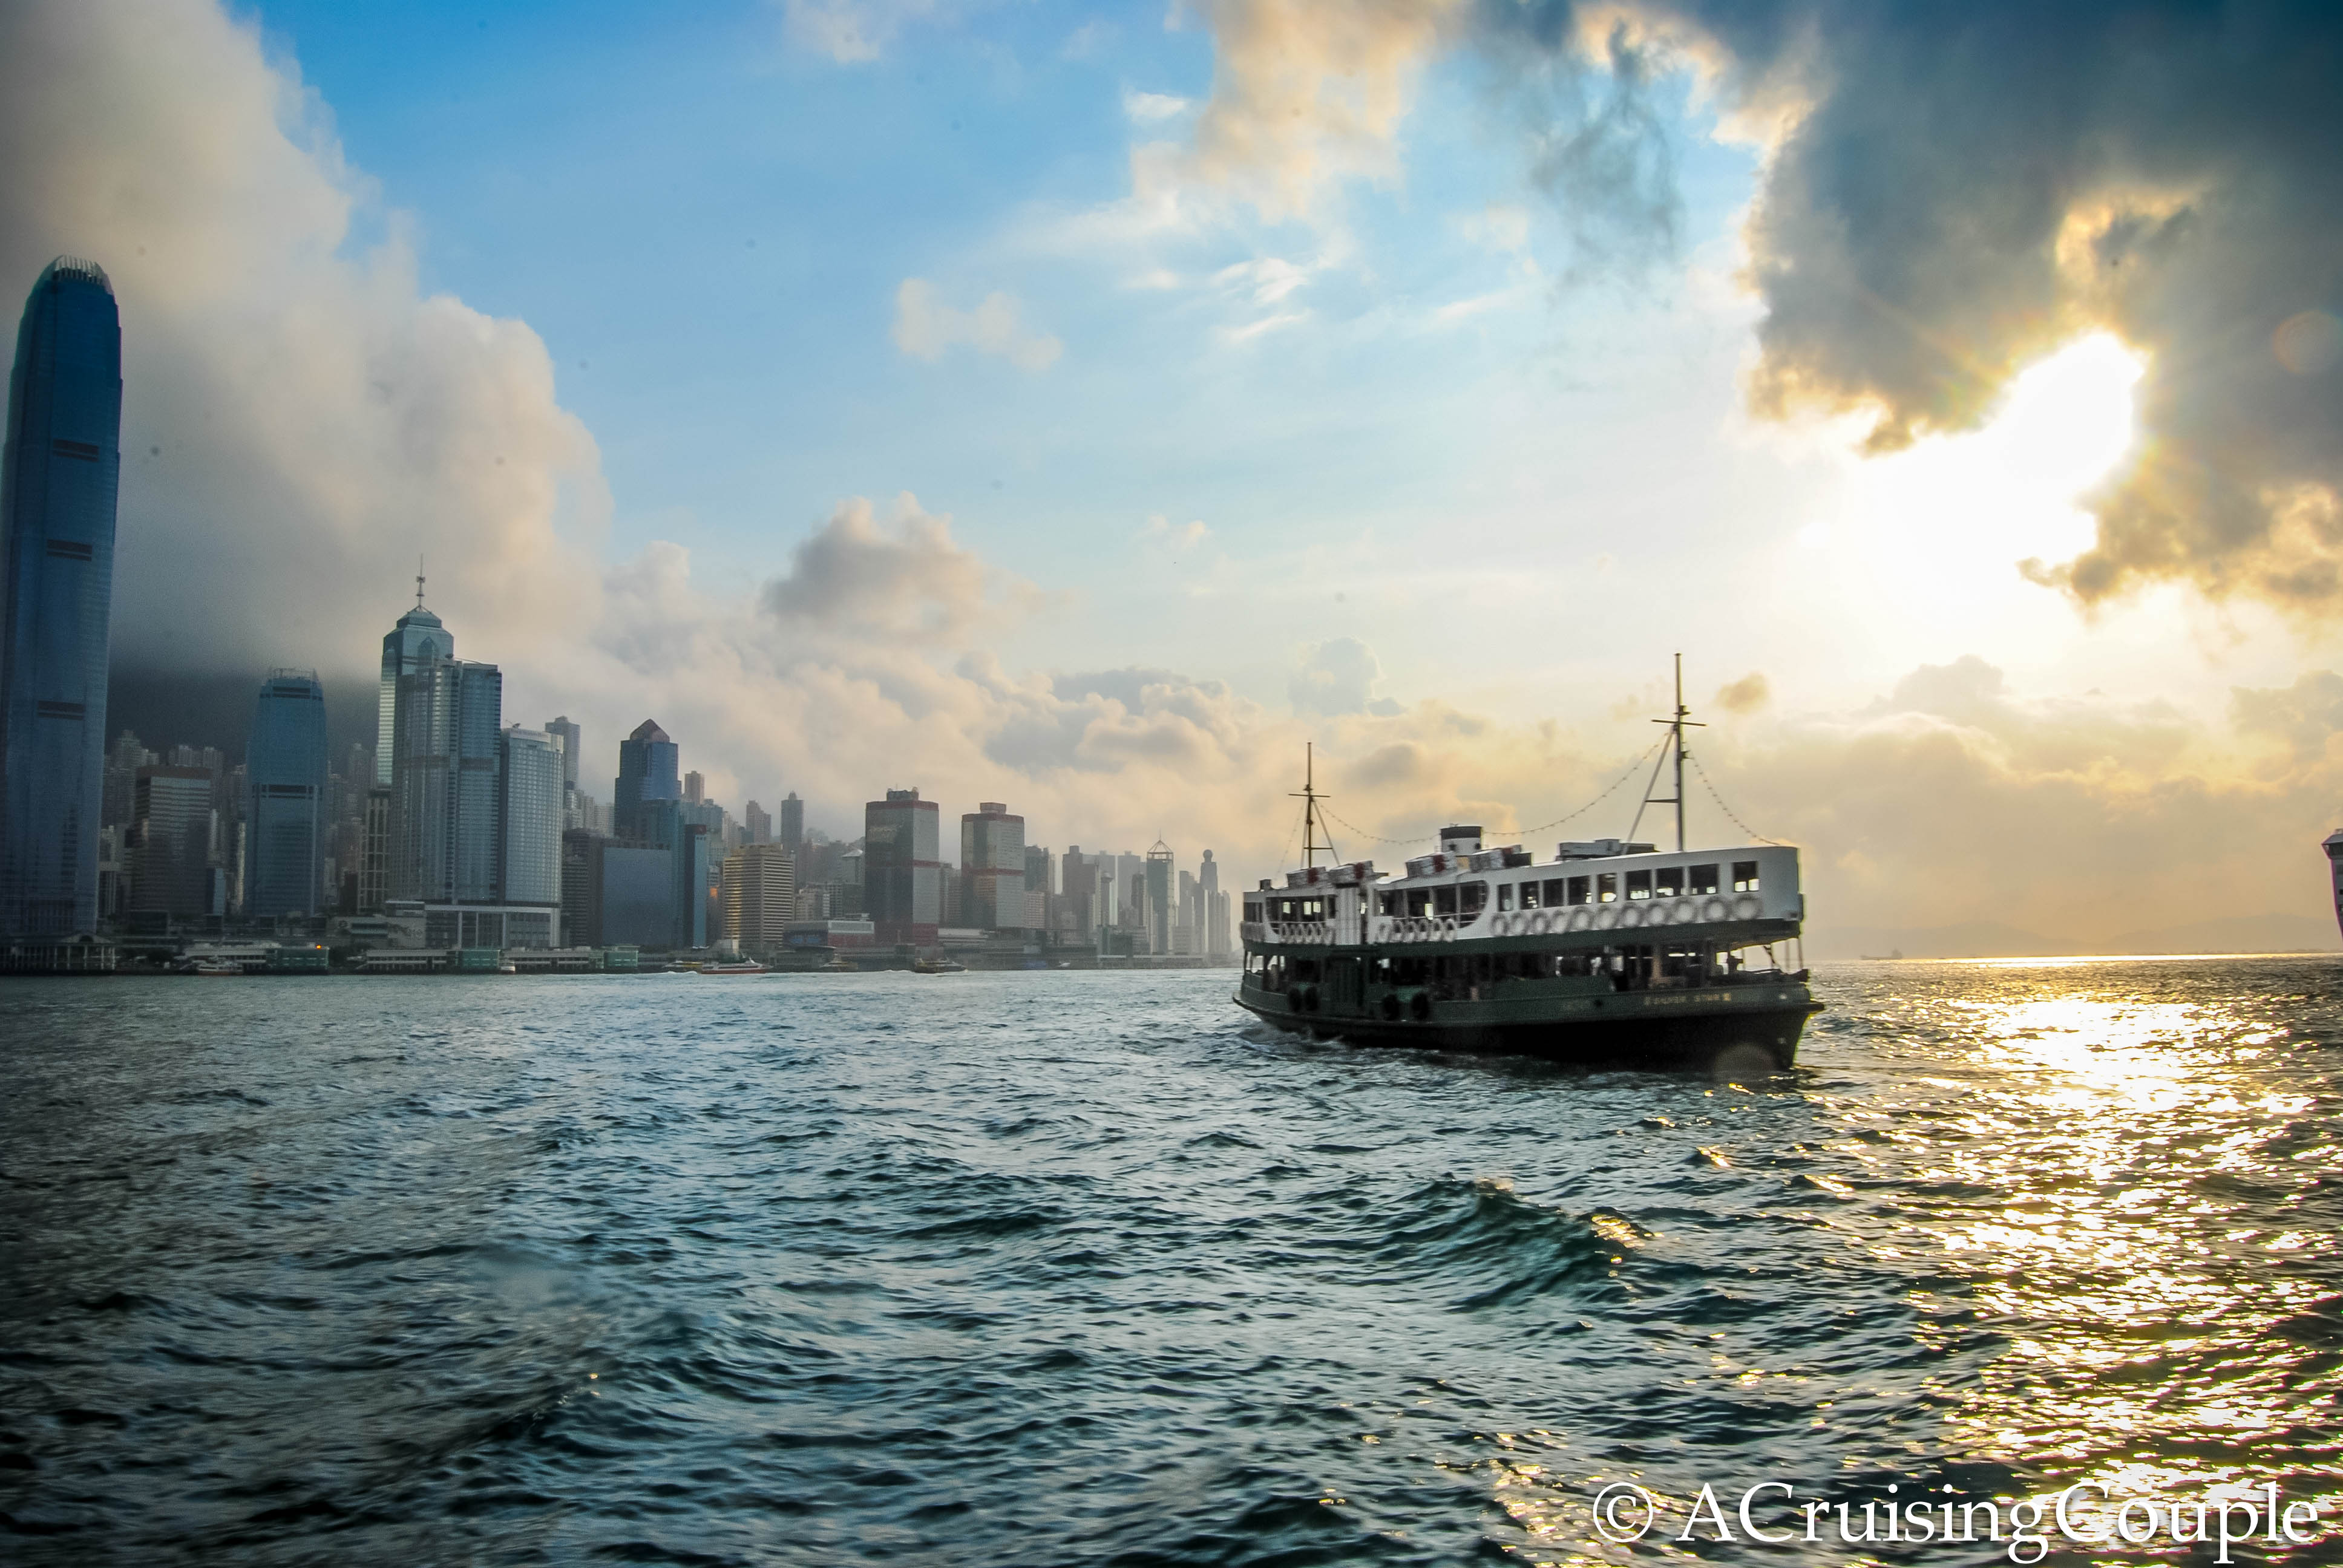 6 Ways to Photograph the Hong Kong Skyline